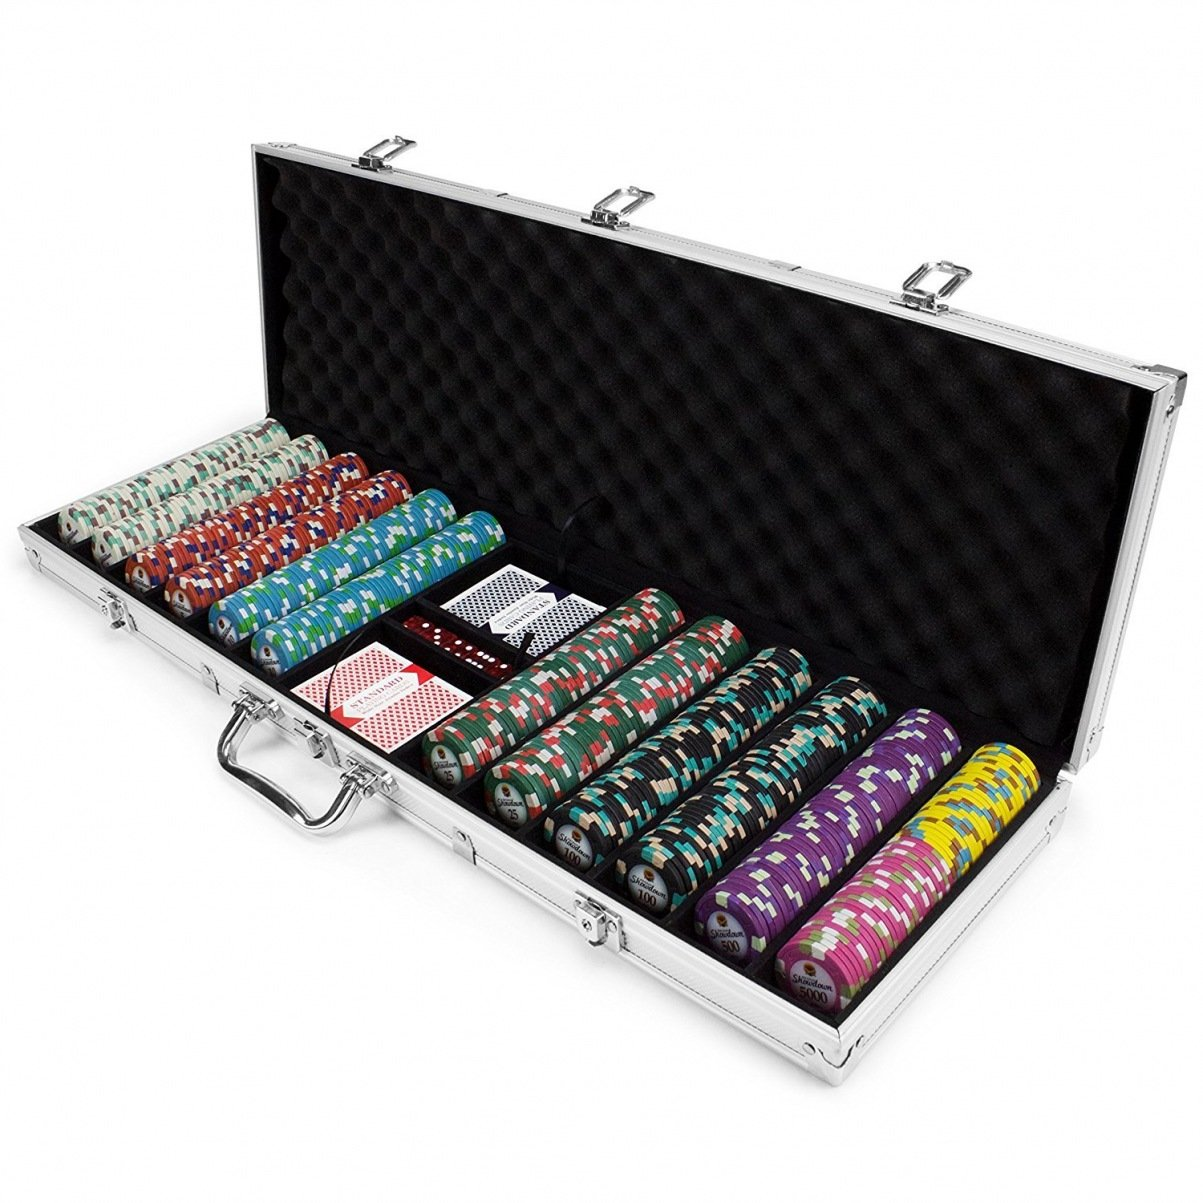 Poker Chips Set, Claysmith 600ct Showdown Texas Holdem Travel Poker Chip Case Set by By-Claysmith Gaming